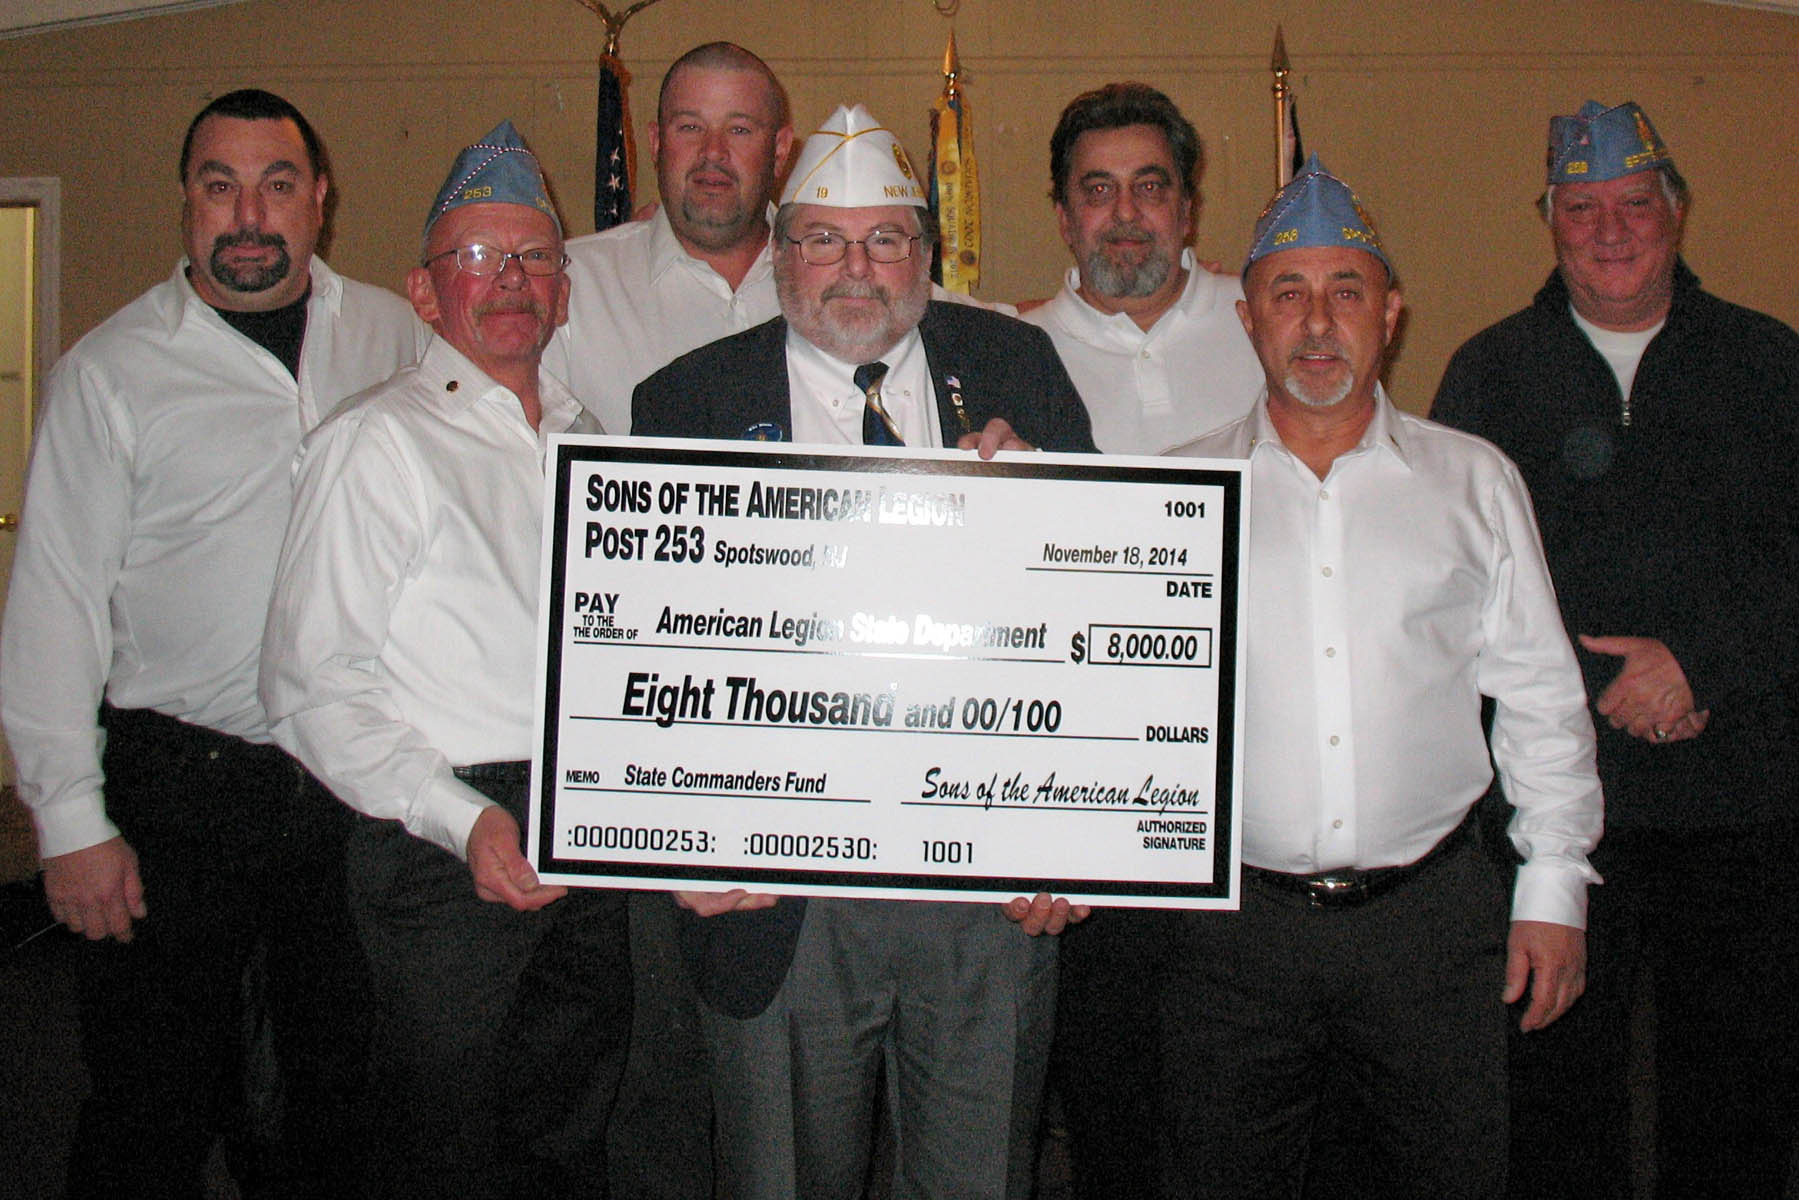 American legion nj commander receives 8000 donation for for American legion donation letter